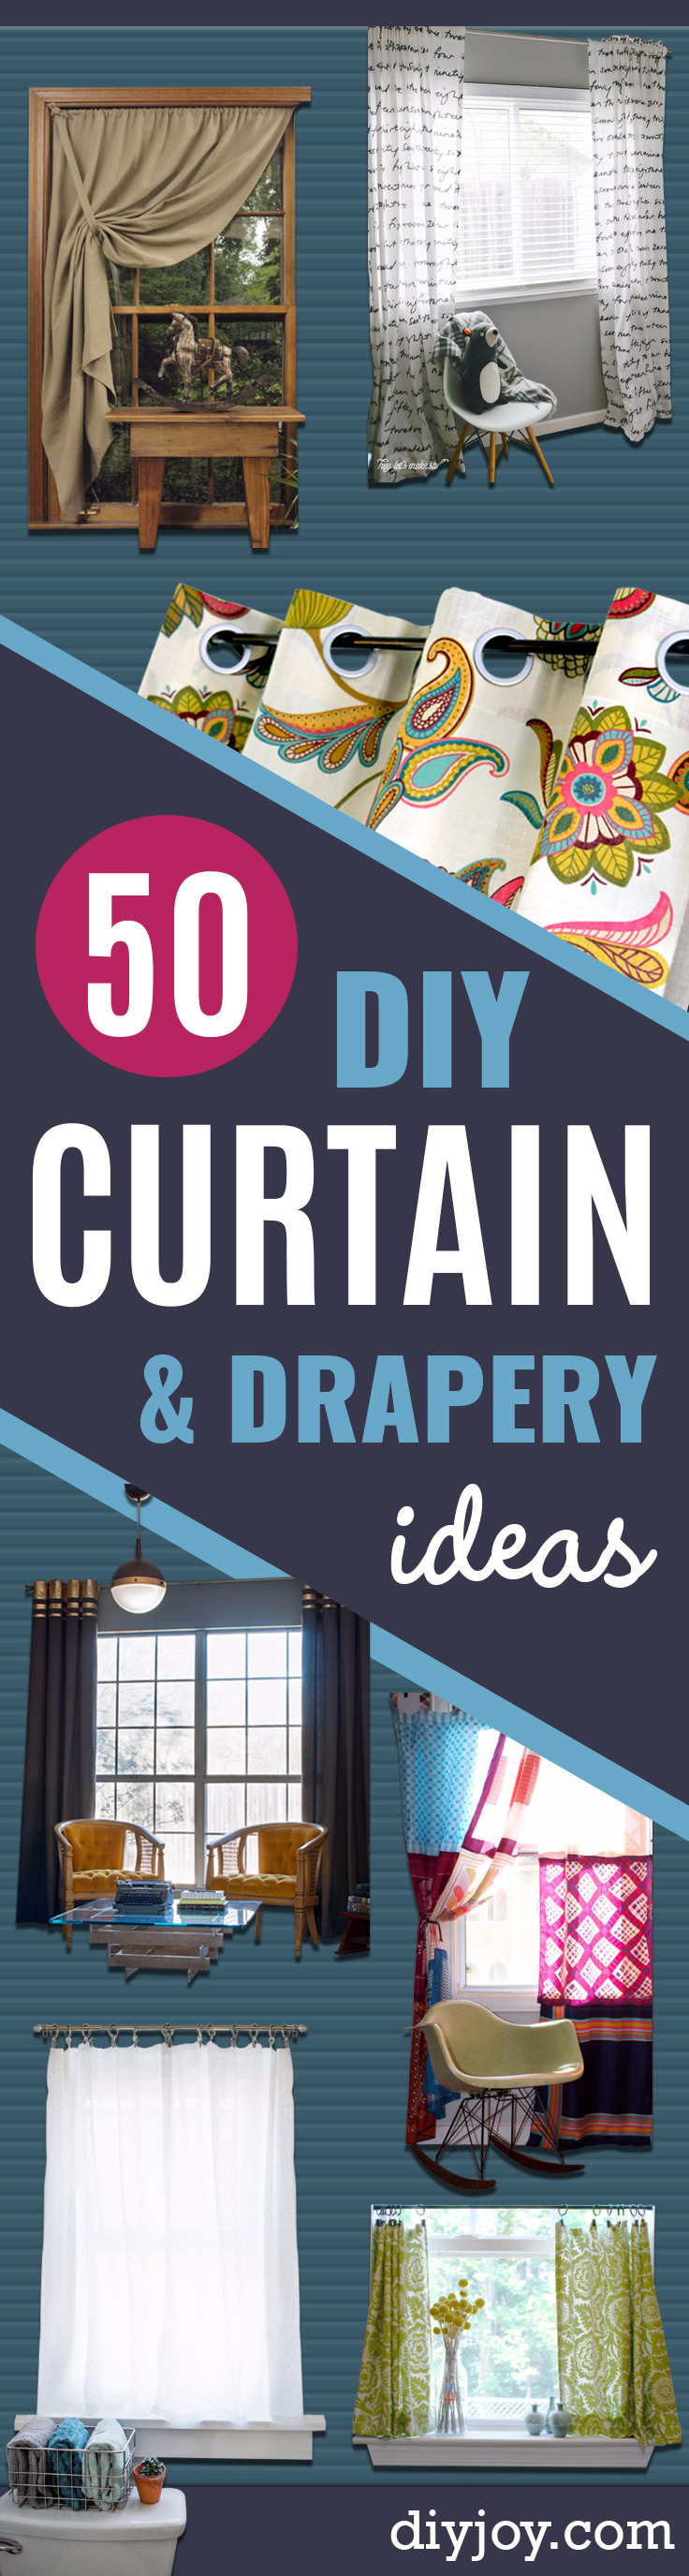 DIY Curtains and Drapery Ideas - Easy No Sew Ideas and Step by Step Tutorials for Drapes and Curtain Ideas - Cheap and Creative Projects for Bedroom, Living Room, Kitchen, Kids and Teen Rooms - Simple Draperies for Fabric, Made Out of Sheets, Blackout Curtains and Valances - Cheap Room Decor Idea for Window Treatment